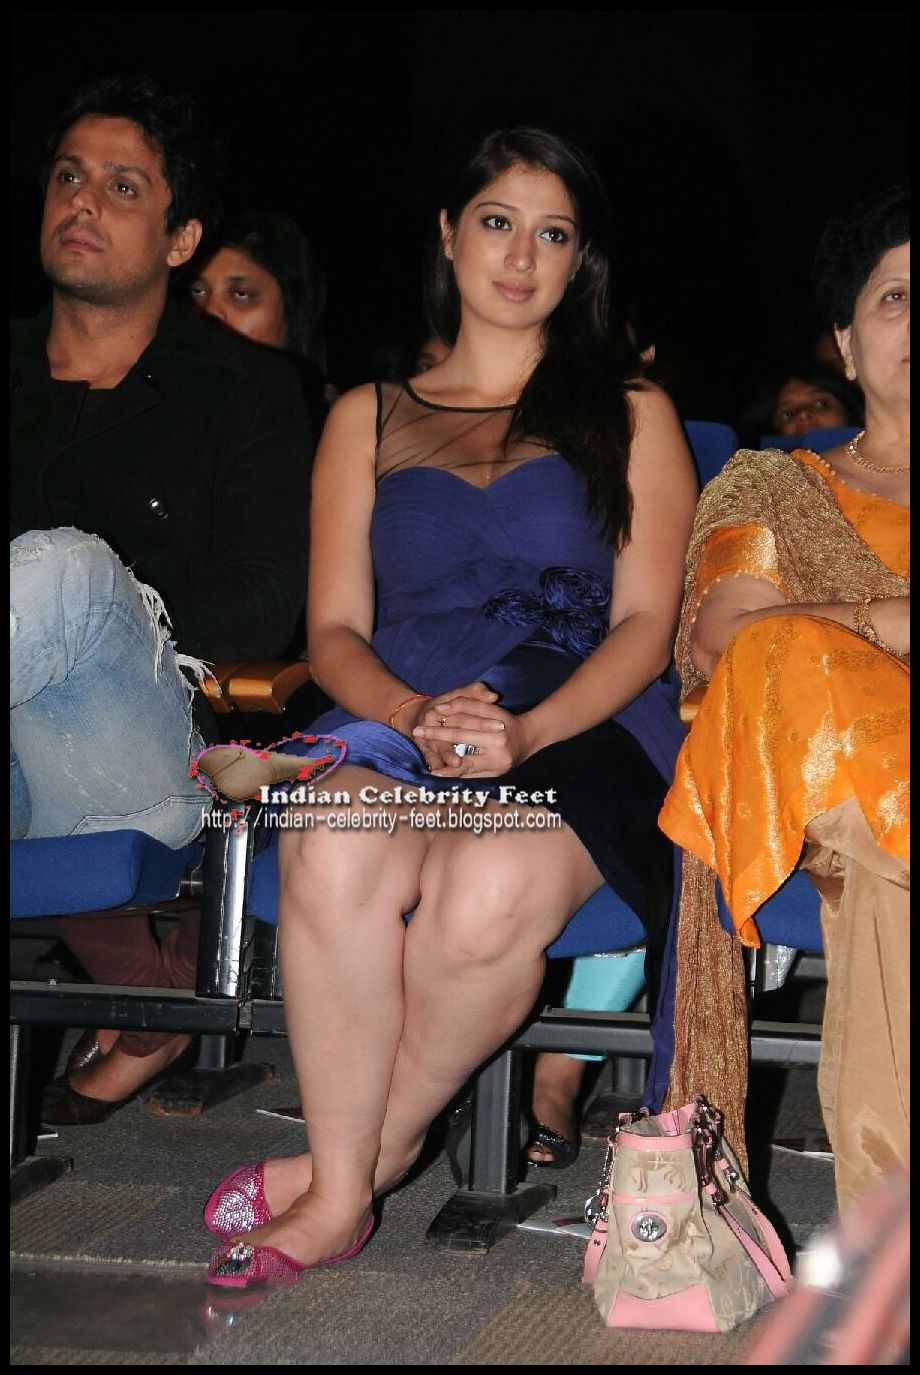 South Indian Actress Lakshmi Rai Sexy Hot Smooth Legs Thunder Thigh Upskirt Armpit Photo Stills Gallery 0004 Tamil Actress Hot Unseen Photos, Tamil Actress Gallery, xxx State ...